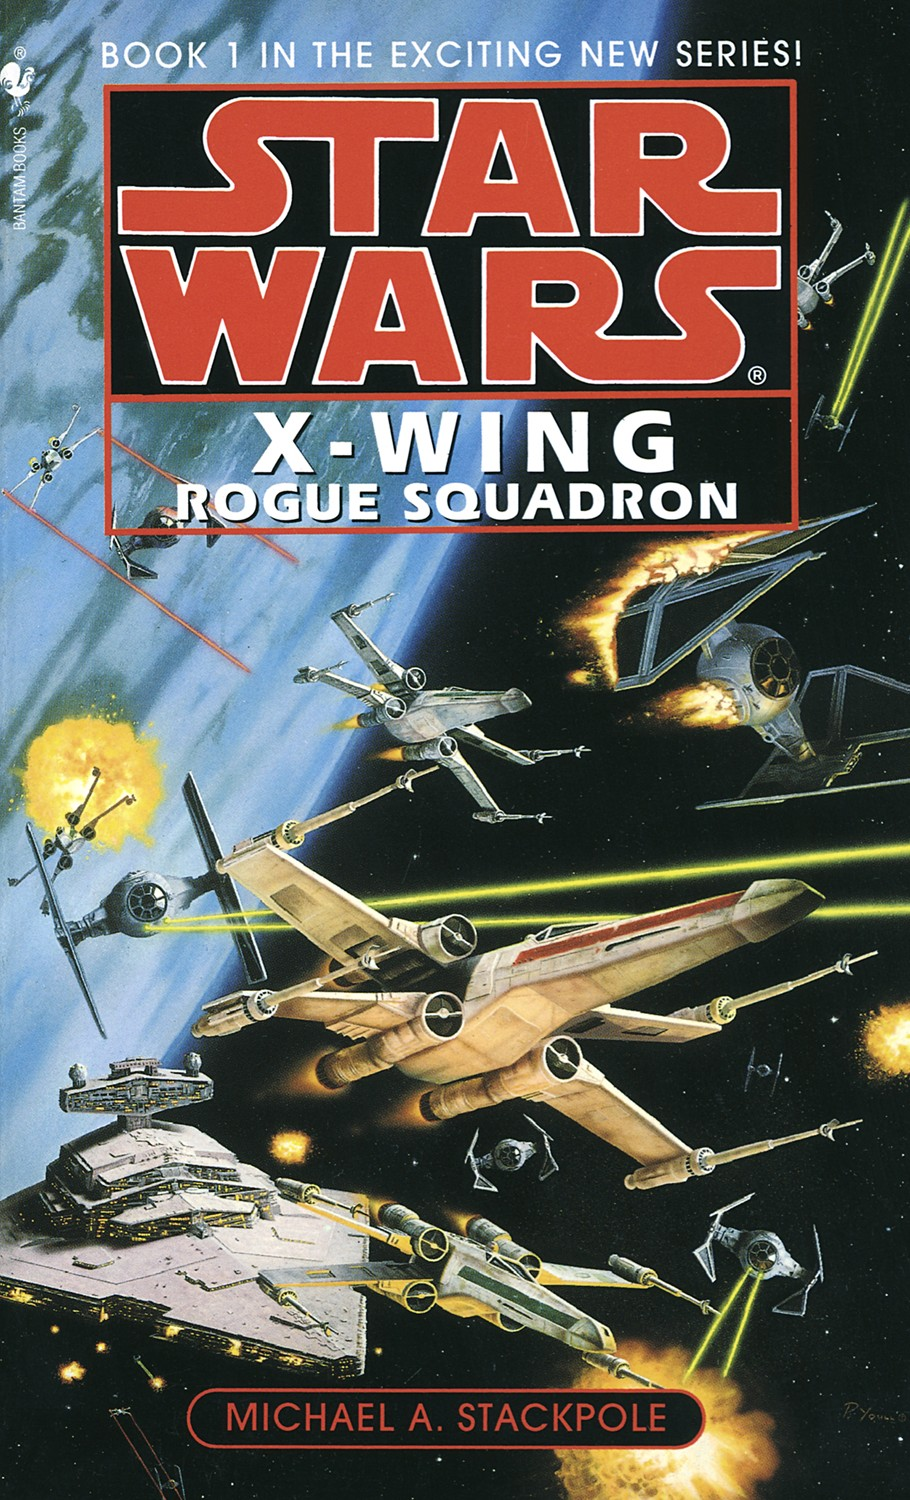 PART 11     Rogue Squadron  (1996)  by Michael A. Stackpole